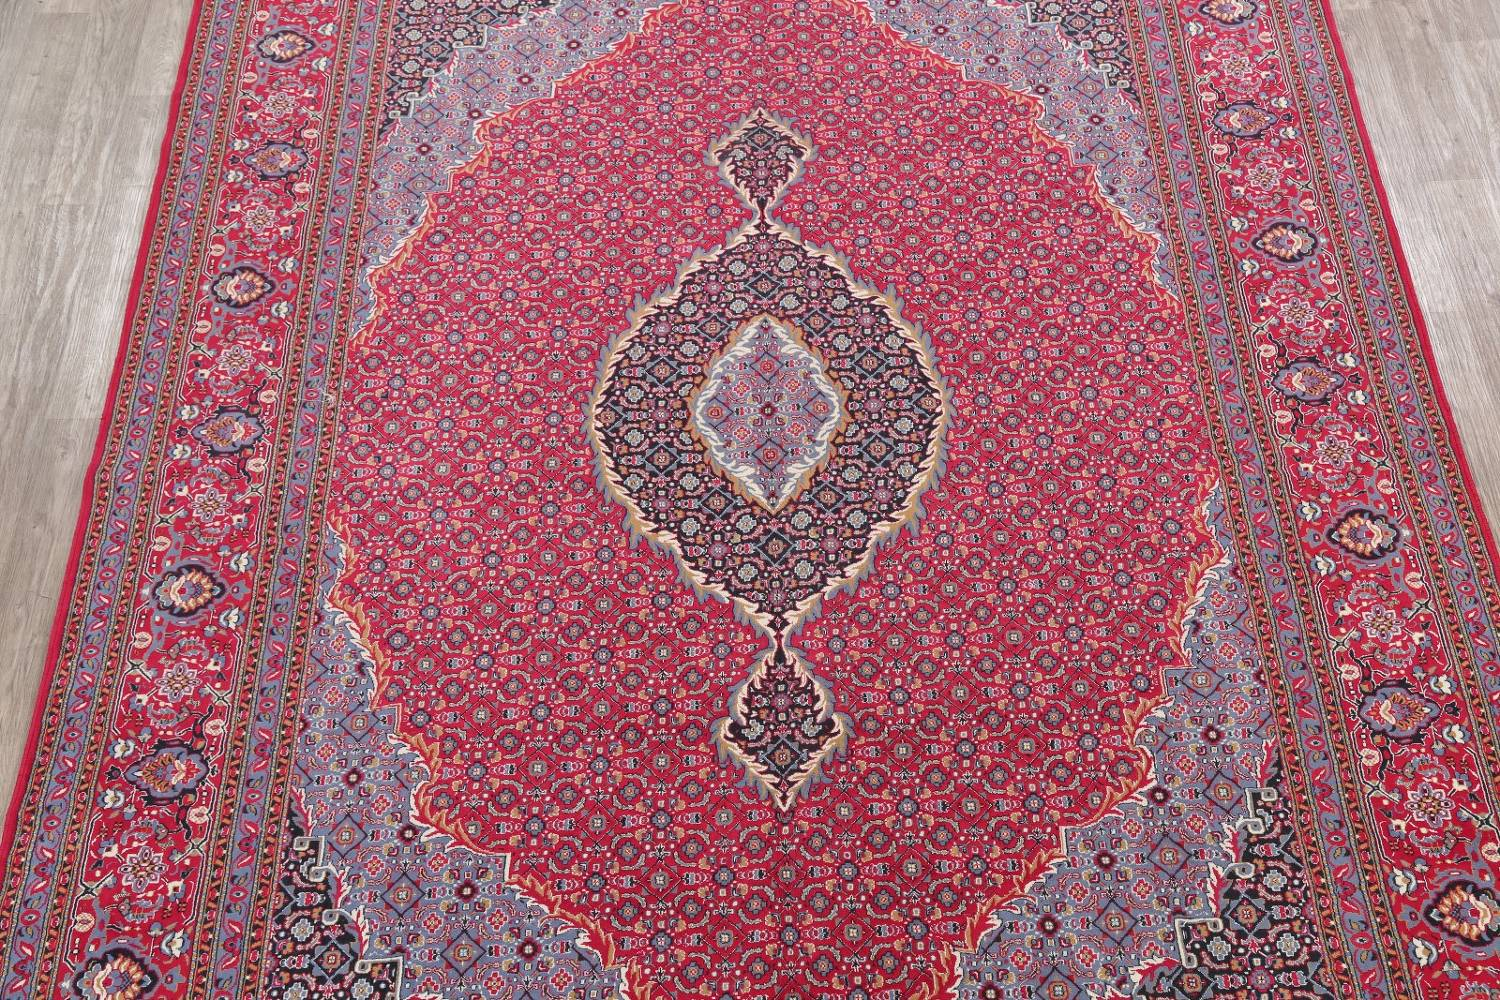 Soft Pile Floral Tabriz Persian Style Area Rug 10x13 image 3